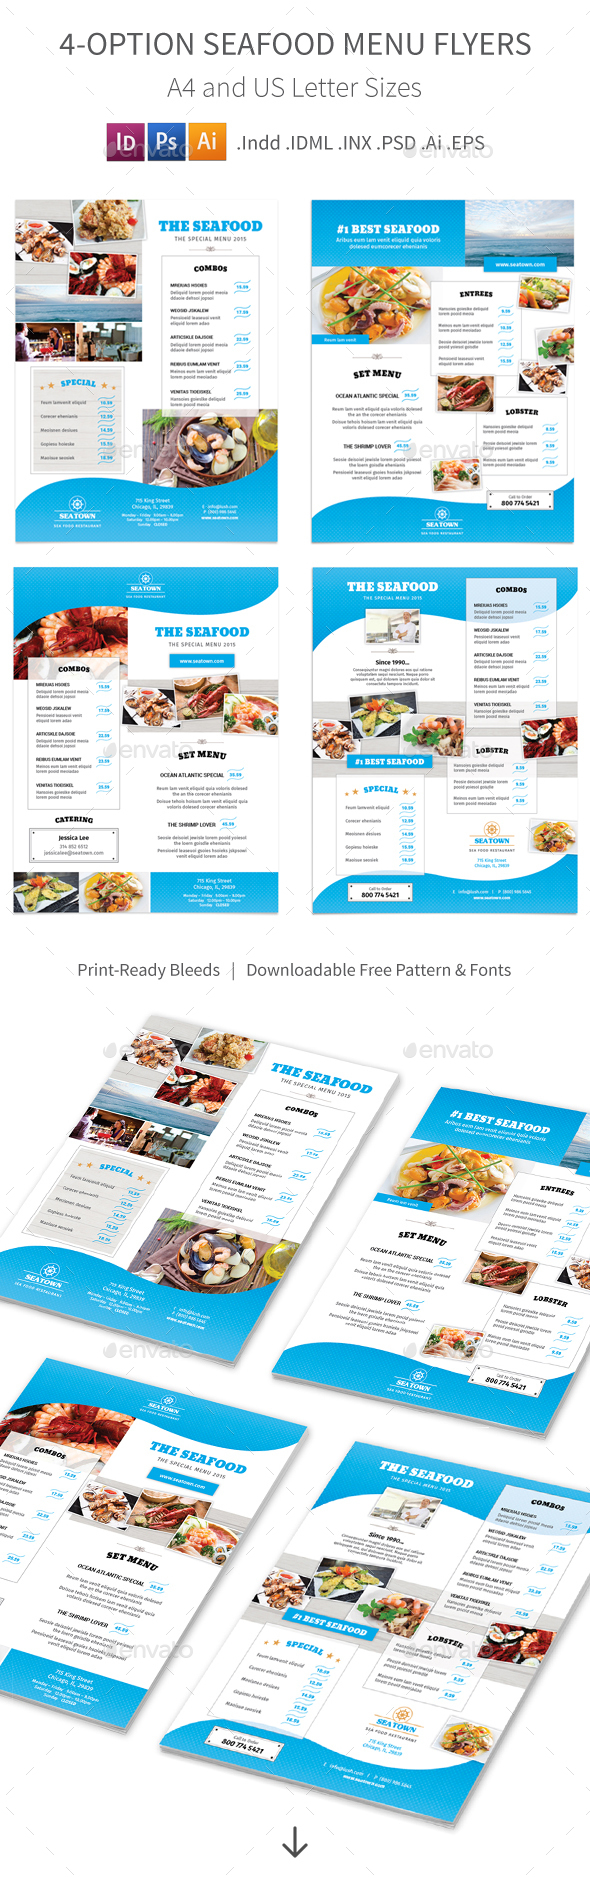 Seafood Restaurant Menu Flyers – 4 Options - Food Menus Print Templates